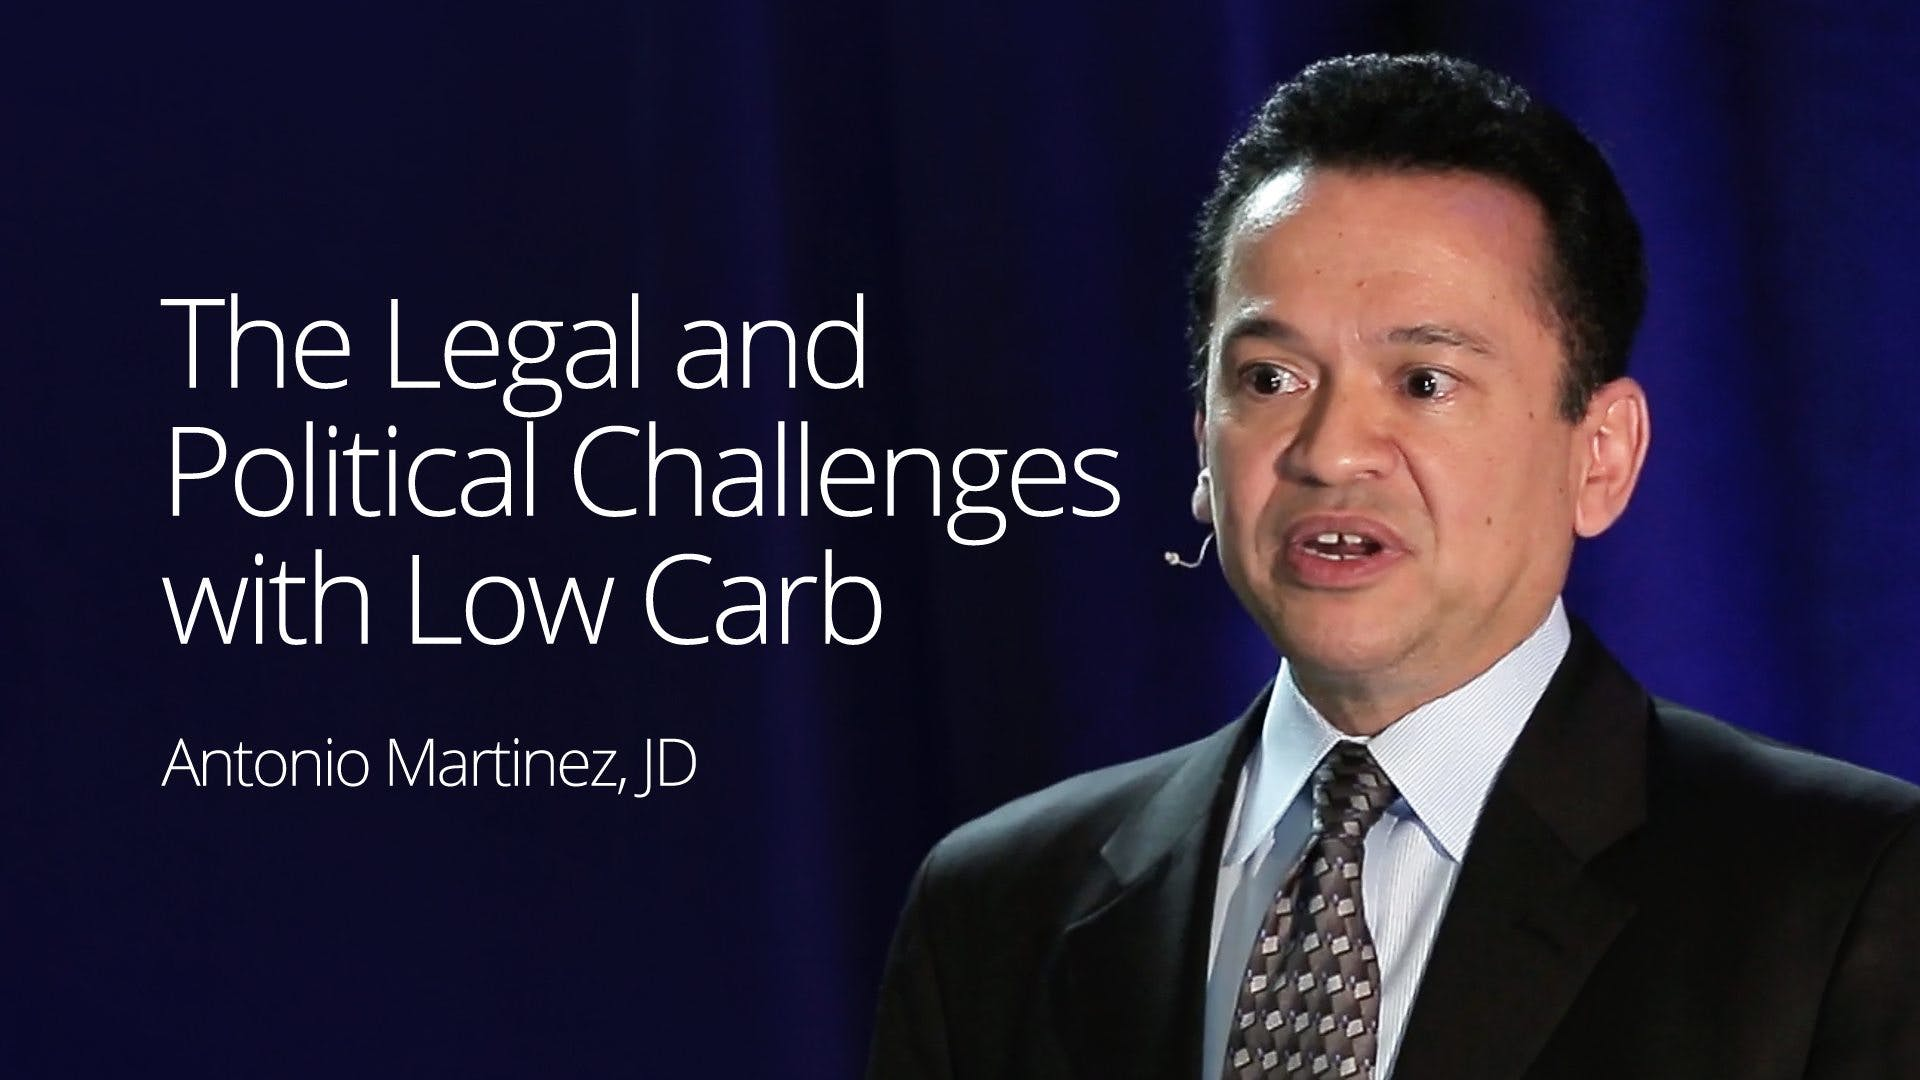 The legal and political challenges with low carb – Antonio Martinez